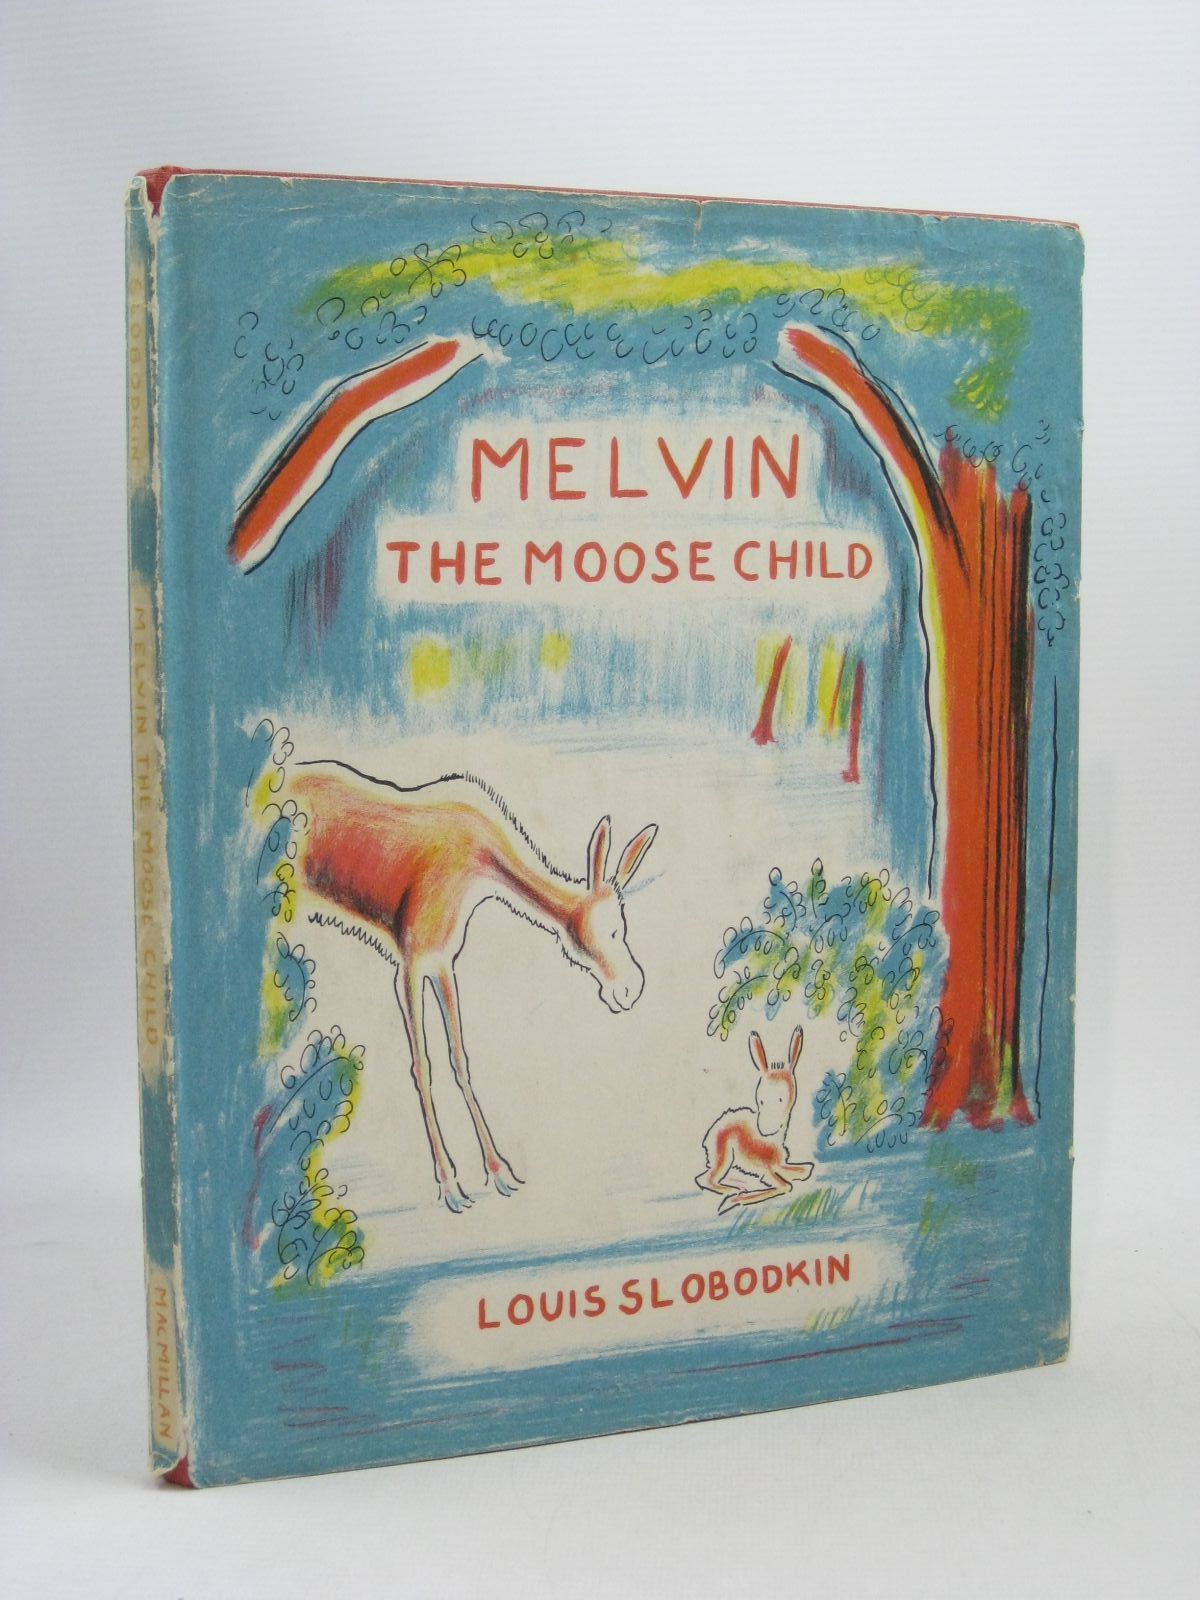 Photo of MELVIN THE MOOSE CHILD written by Slobodkin, Louis illustrated by Slobodkin, Louis published by Macmillan, New York (STOCK CODE: 1314655)  for sale by Stella & Rose's Books